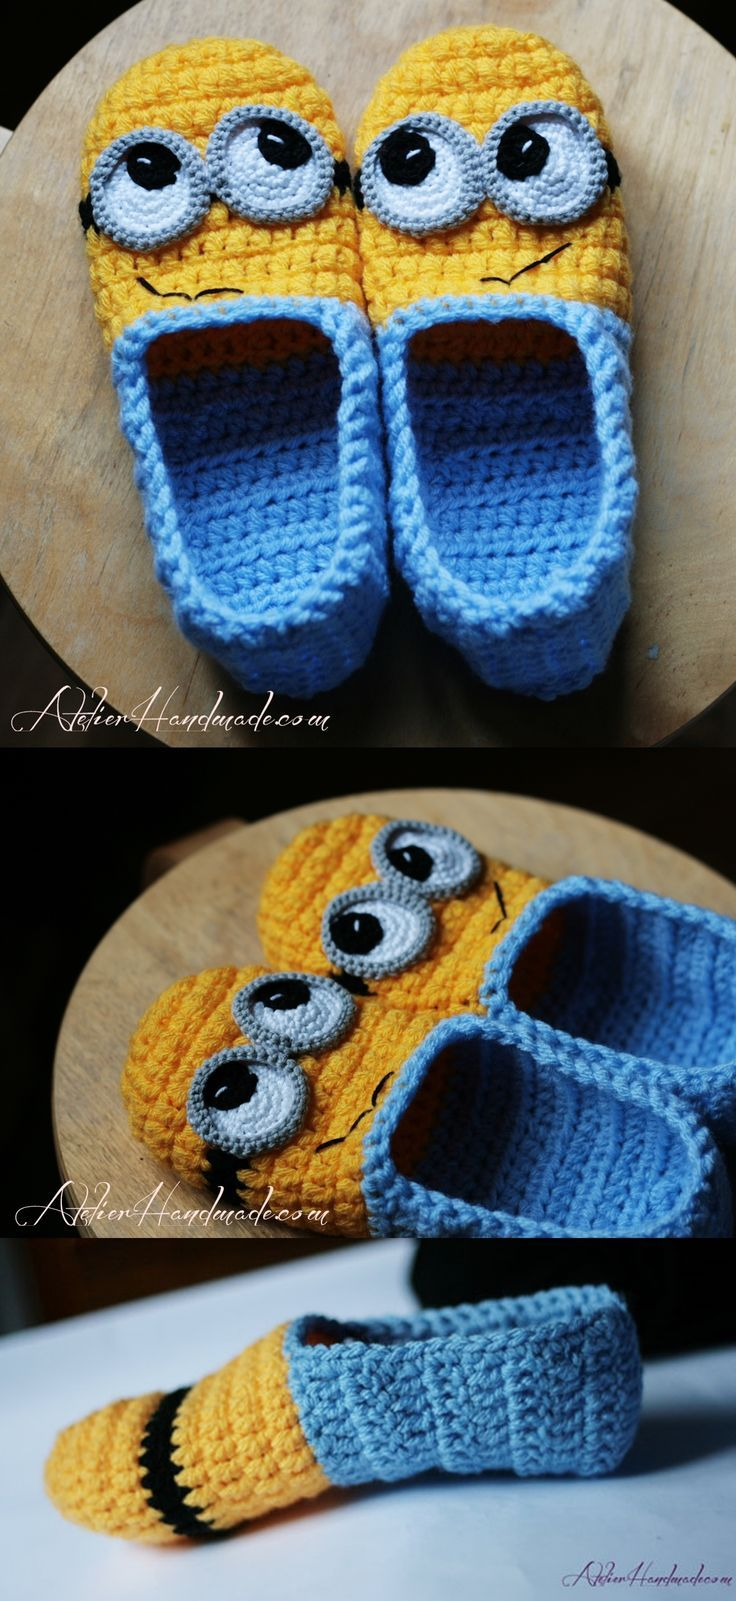 Minion slippers yellow and blue pattern by atelier handmade minion slippers pattern bankloansurffo Image collections